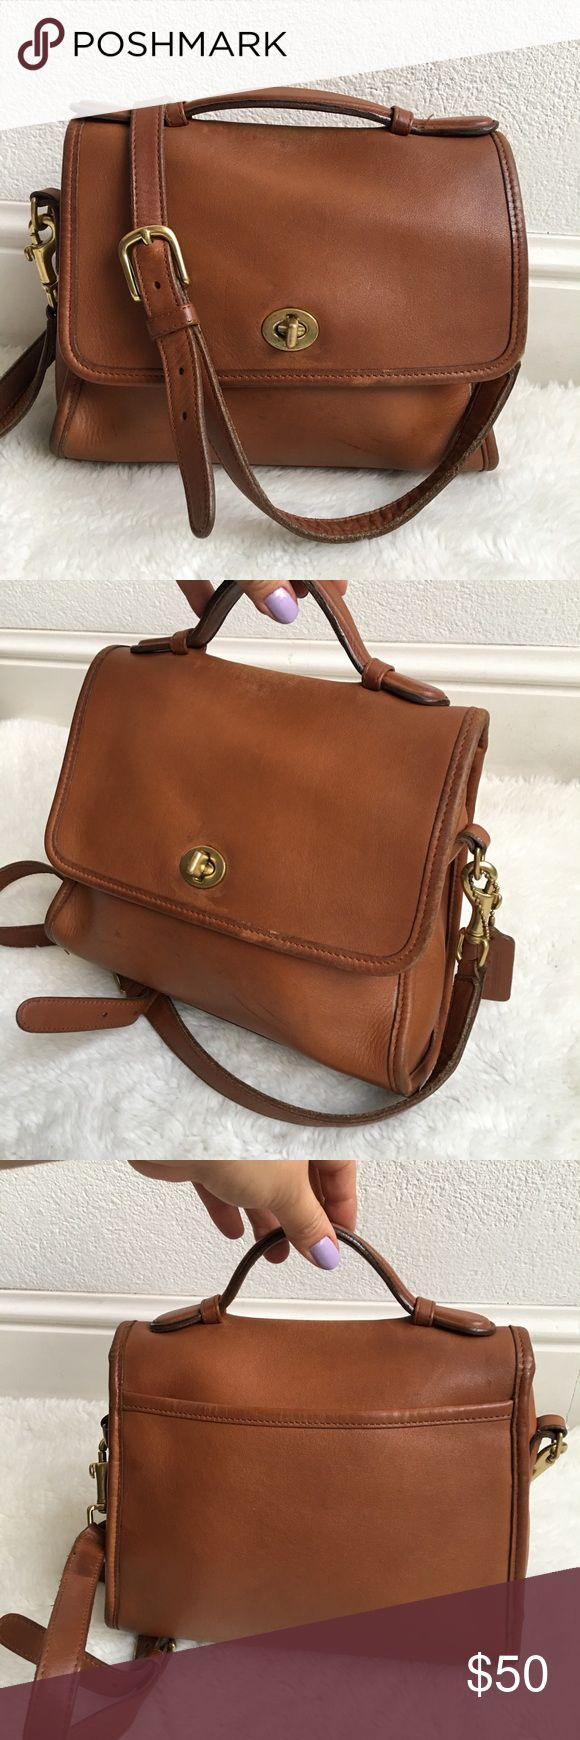 "Vintage Coach Legacy Brown Leather Court Bag Pre-owned authentic Vintage Coach Legacy Brown Leather Court Bag. It measures 9.5x8"" inches. Strap is 52"" inches. Made in Costa Rica. No. E2P-9870. Bag has signs of wear and patina throughout due to its age. Please look at pictures for better reference. Happy Shopping! Coach Bags Crossbody Bags"